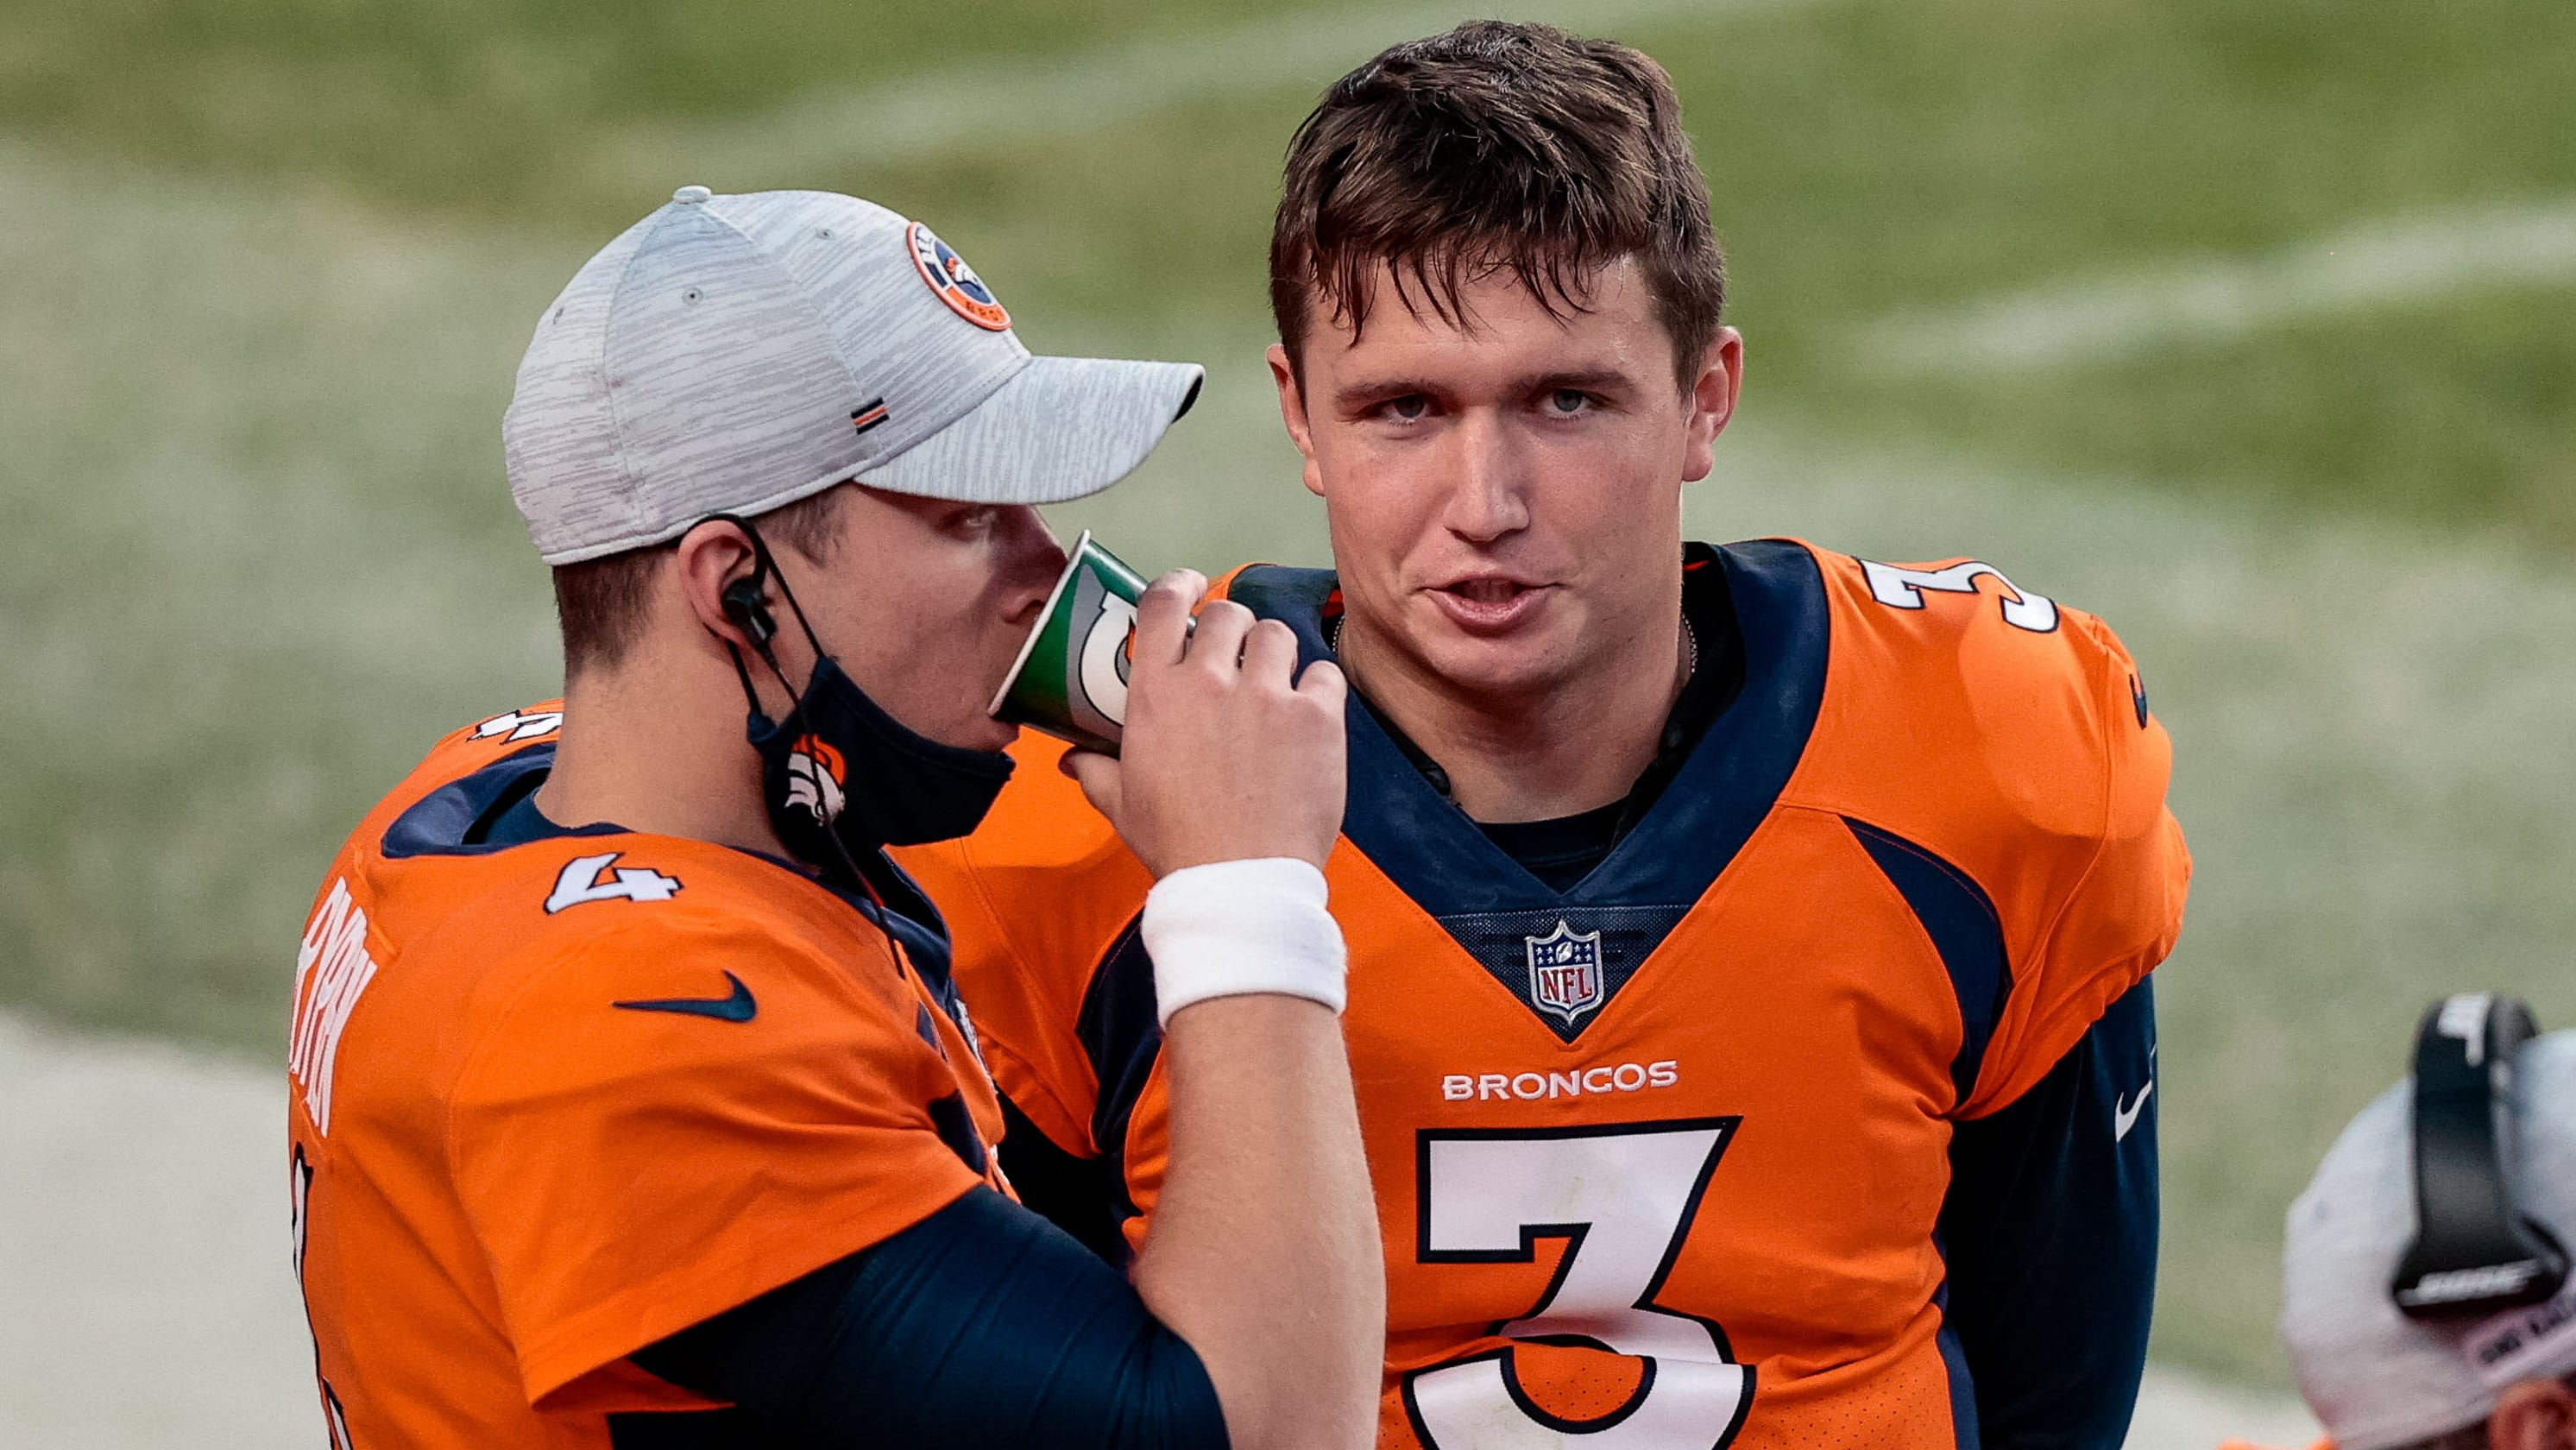 All Denver Broncos quarterbacks ineligible for Sunday's game vs. Saints following COVID exposure – USA TODAY